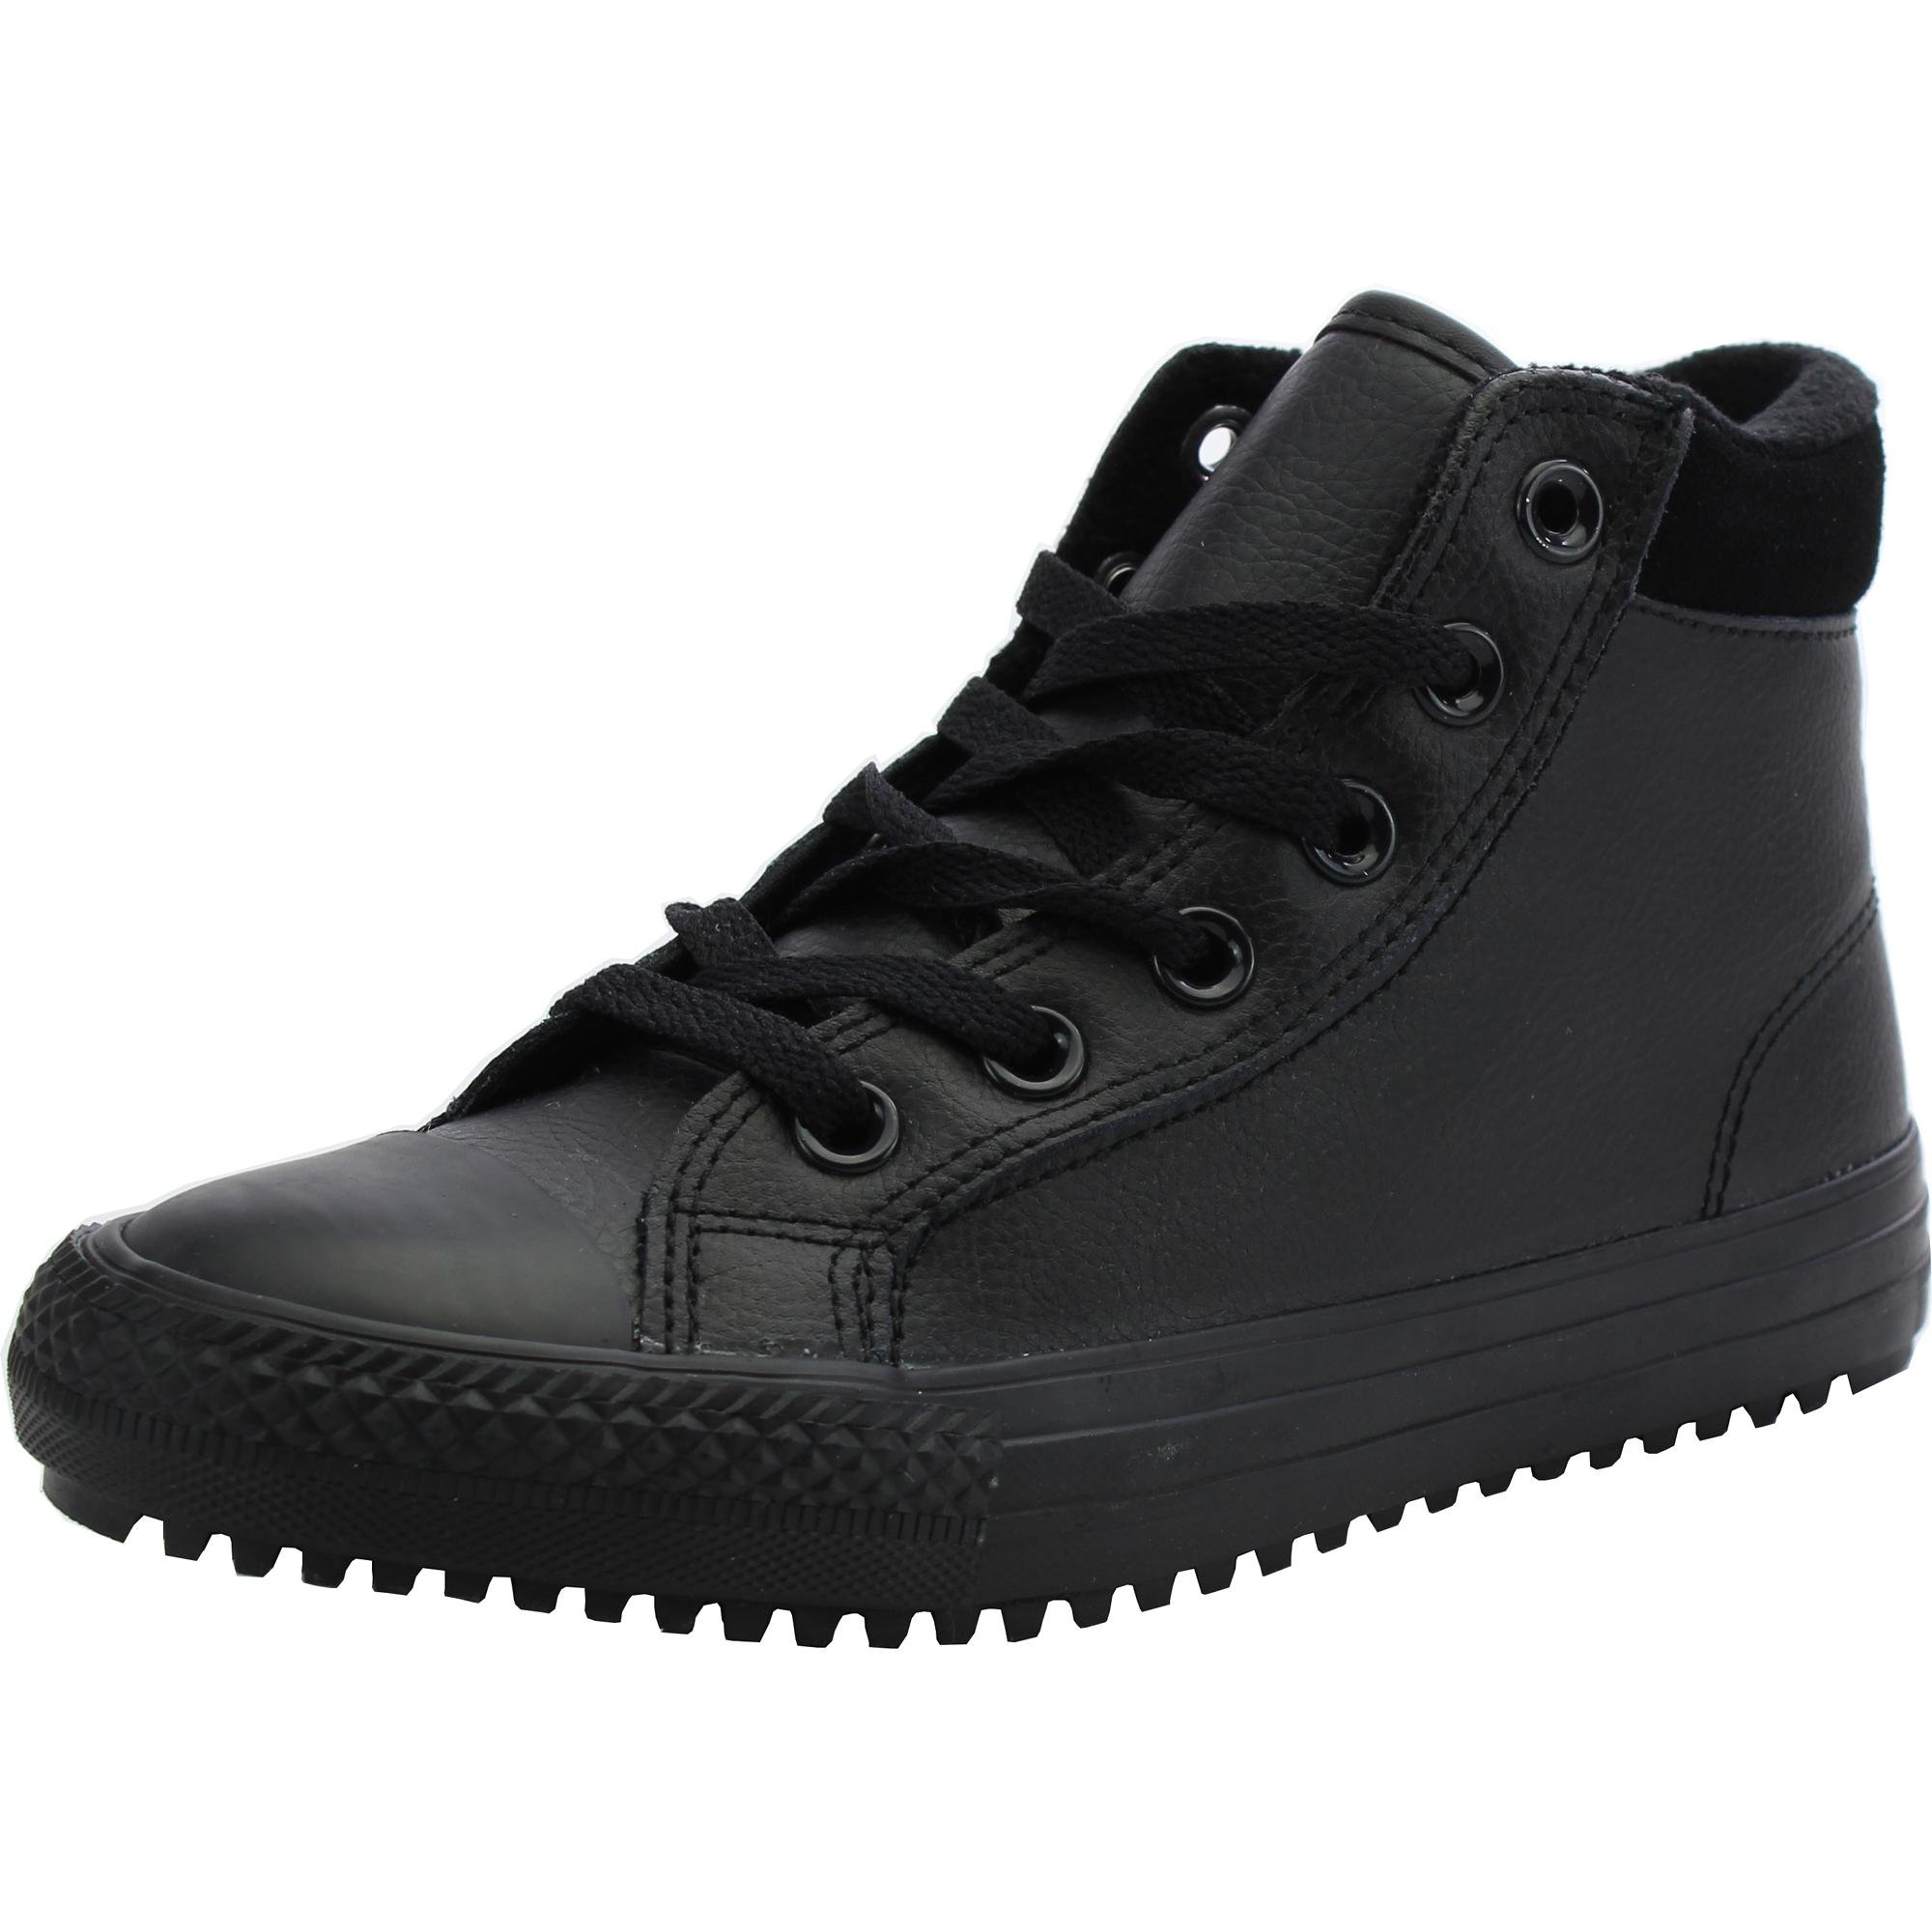 Converse Chuck Taylor All Star Weatherized Black Leather Junior